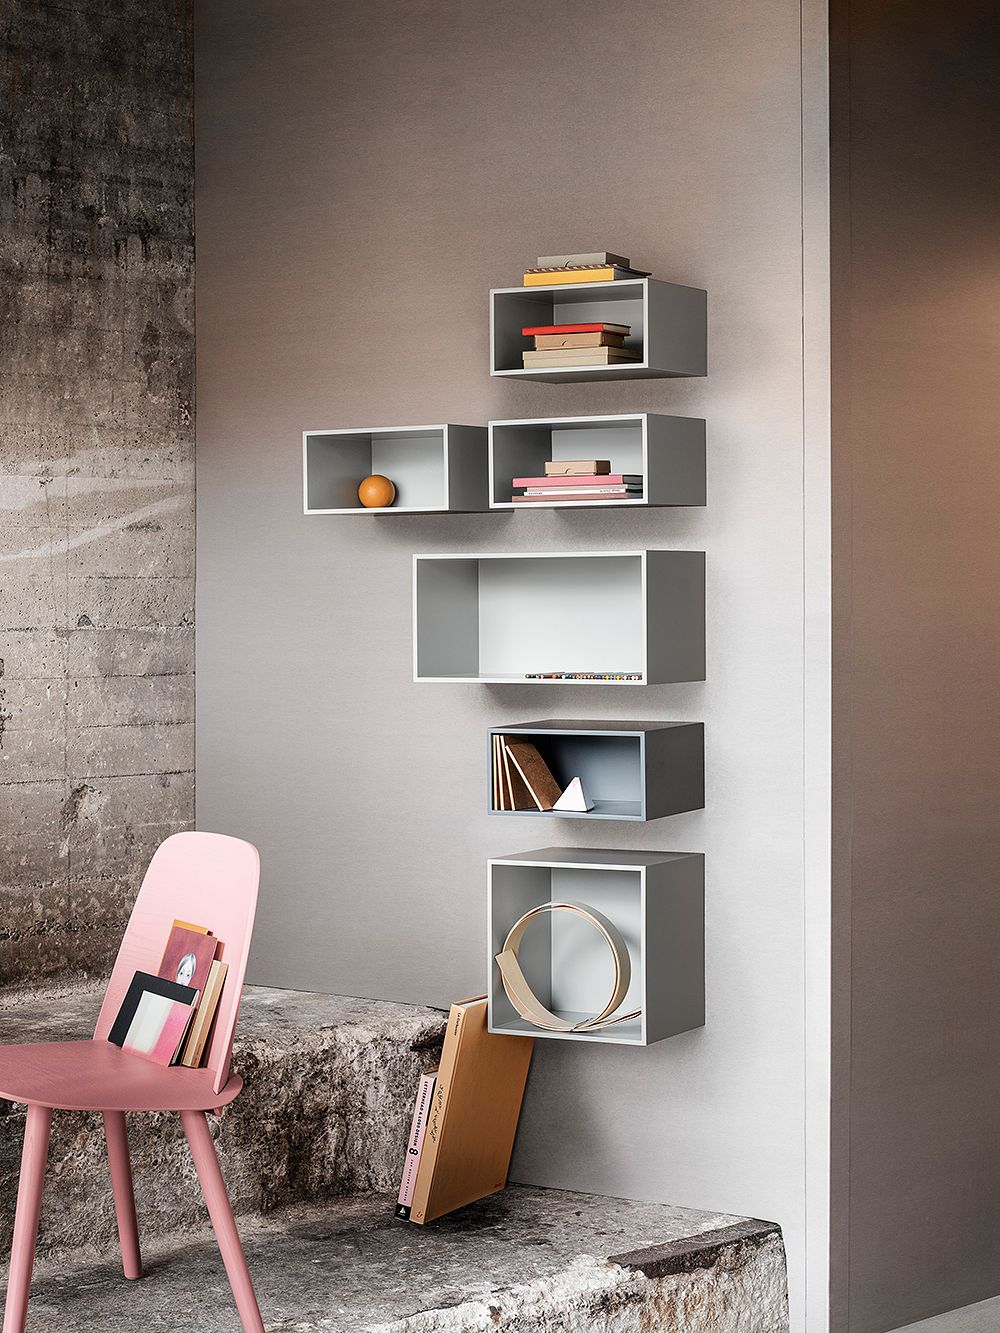 Muuto's Stacked shelving system